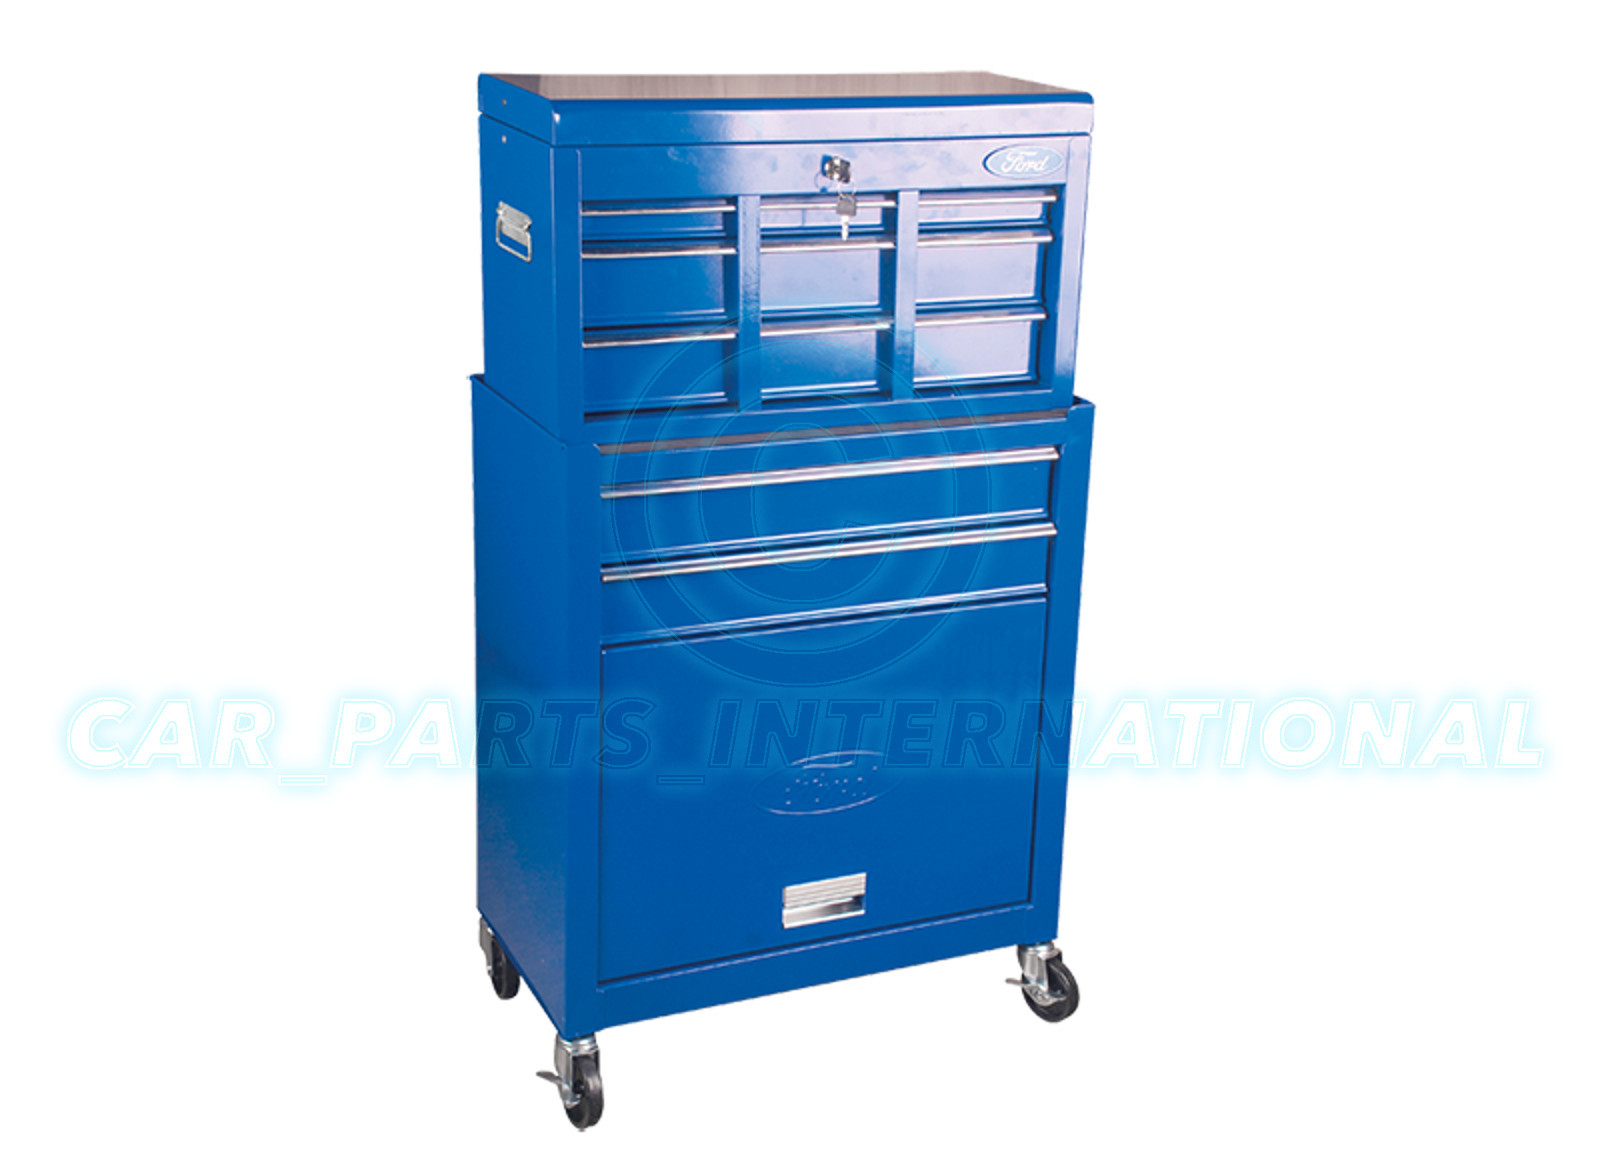 Ford Tool Box : Ford tools metal tool box cabinet with drawers top